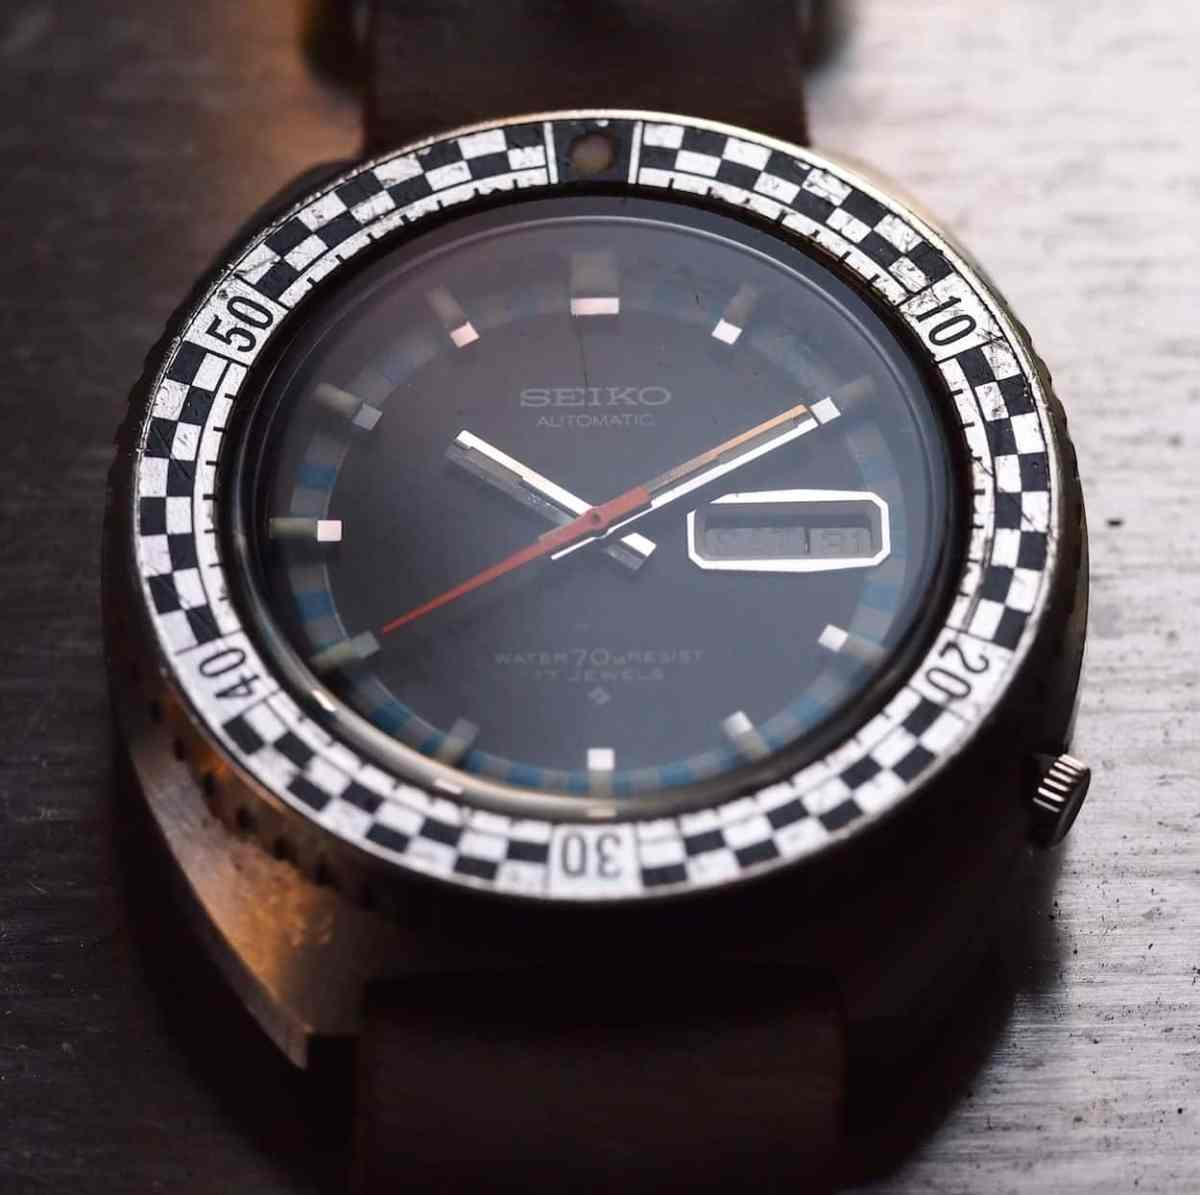 Seiko Rally Diver dark shot